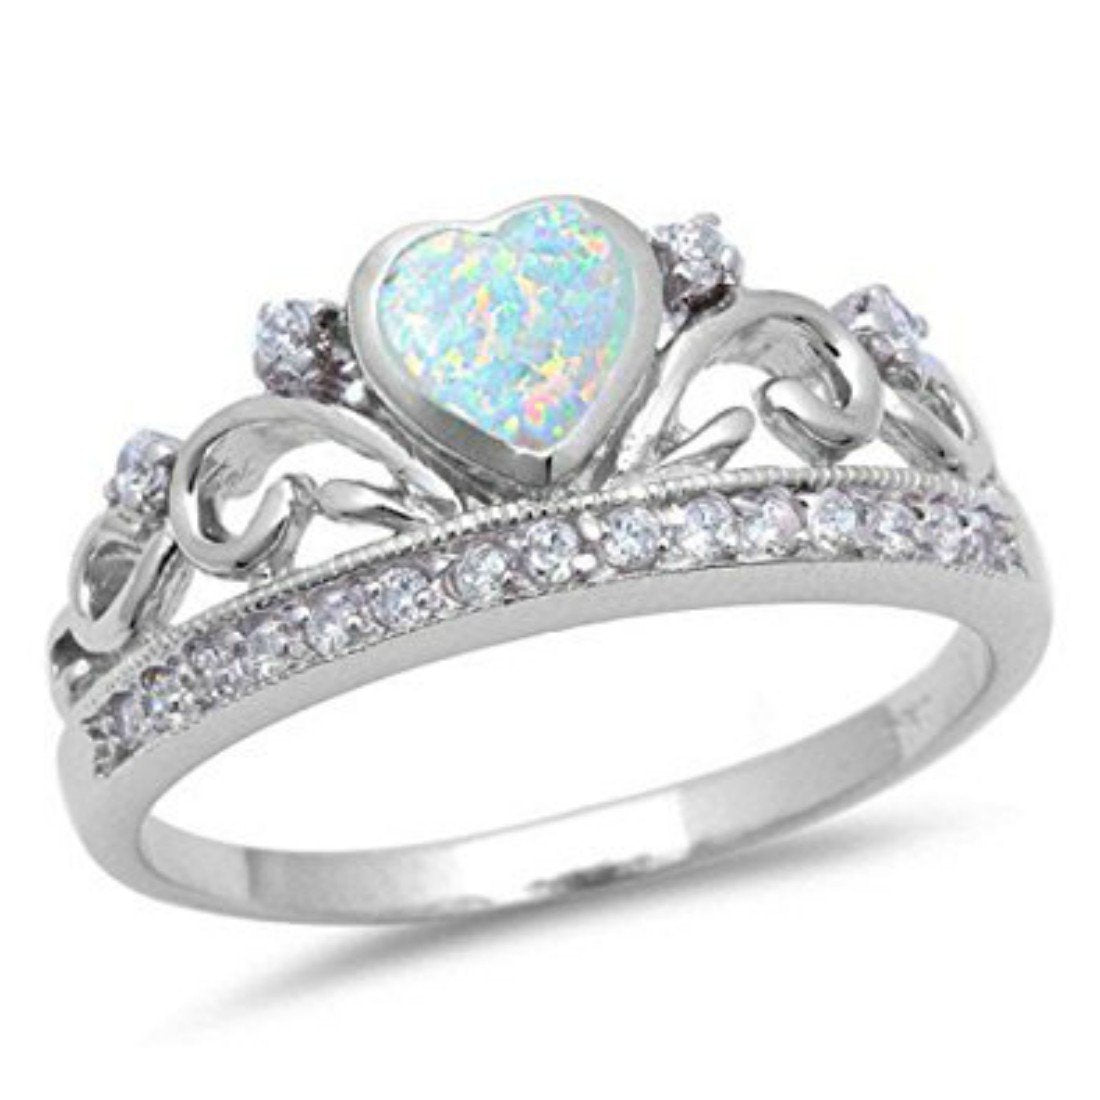 Half Eternity Heart Crown Ring White Opal Round Cubic Zirconia Solid 925 Sterling Silver